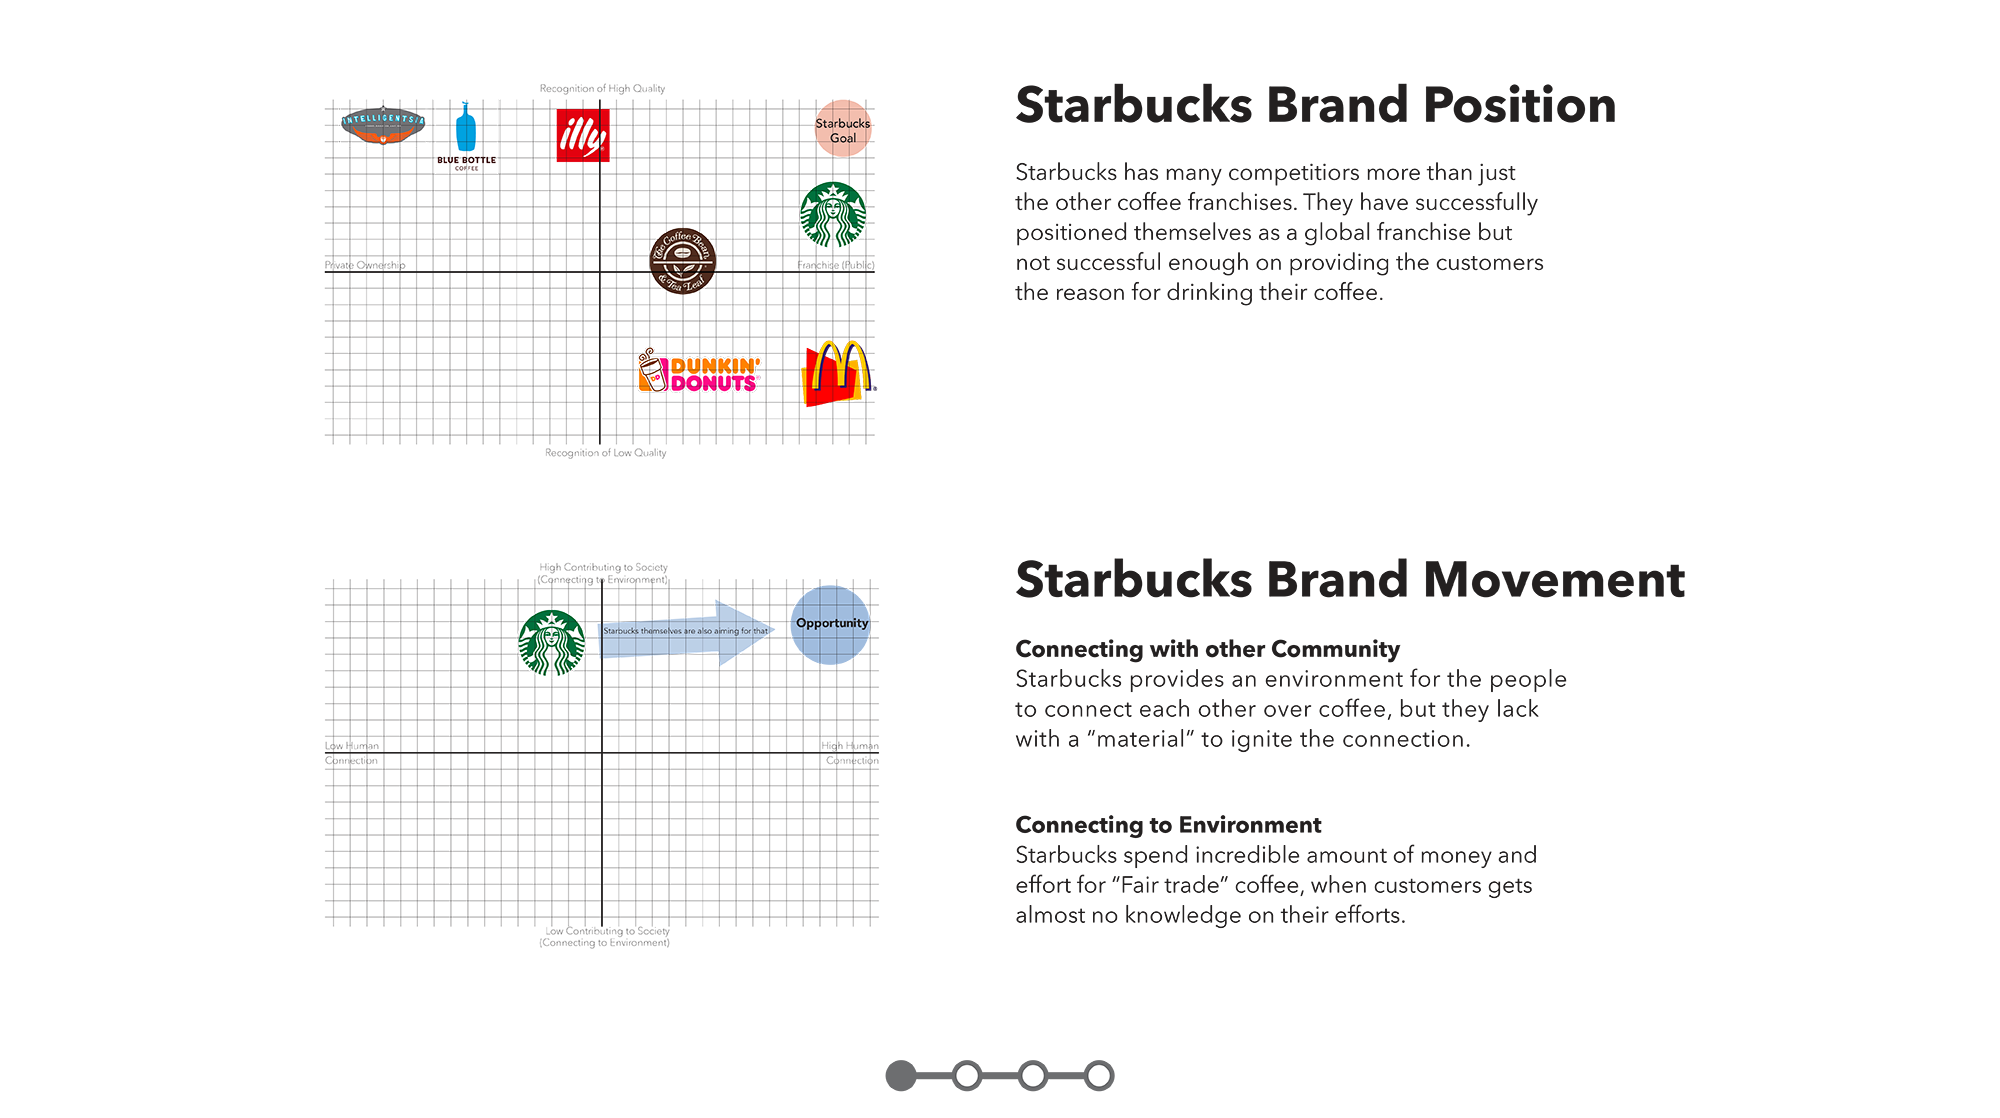 Research proposal starbucks survey sites hip save tips for doing your work at places like starbucks consumer news crain nvjuhfo Images